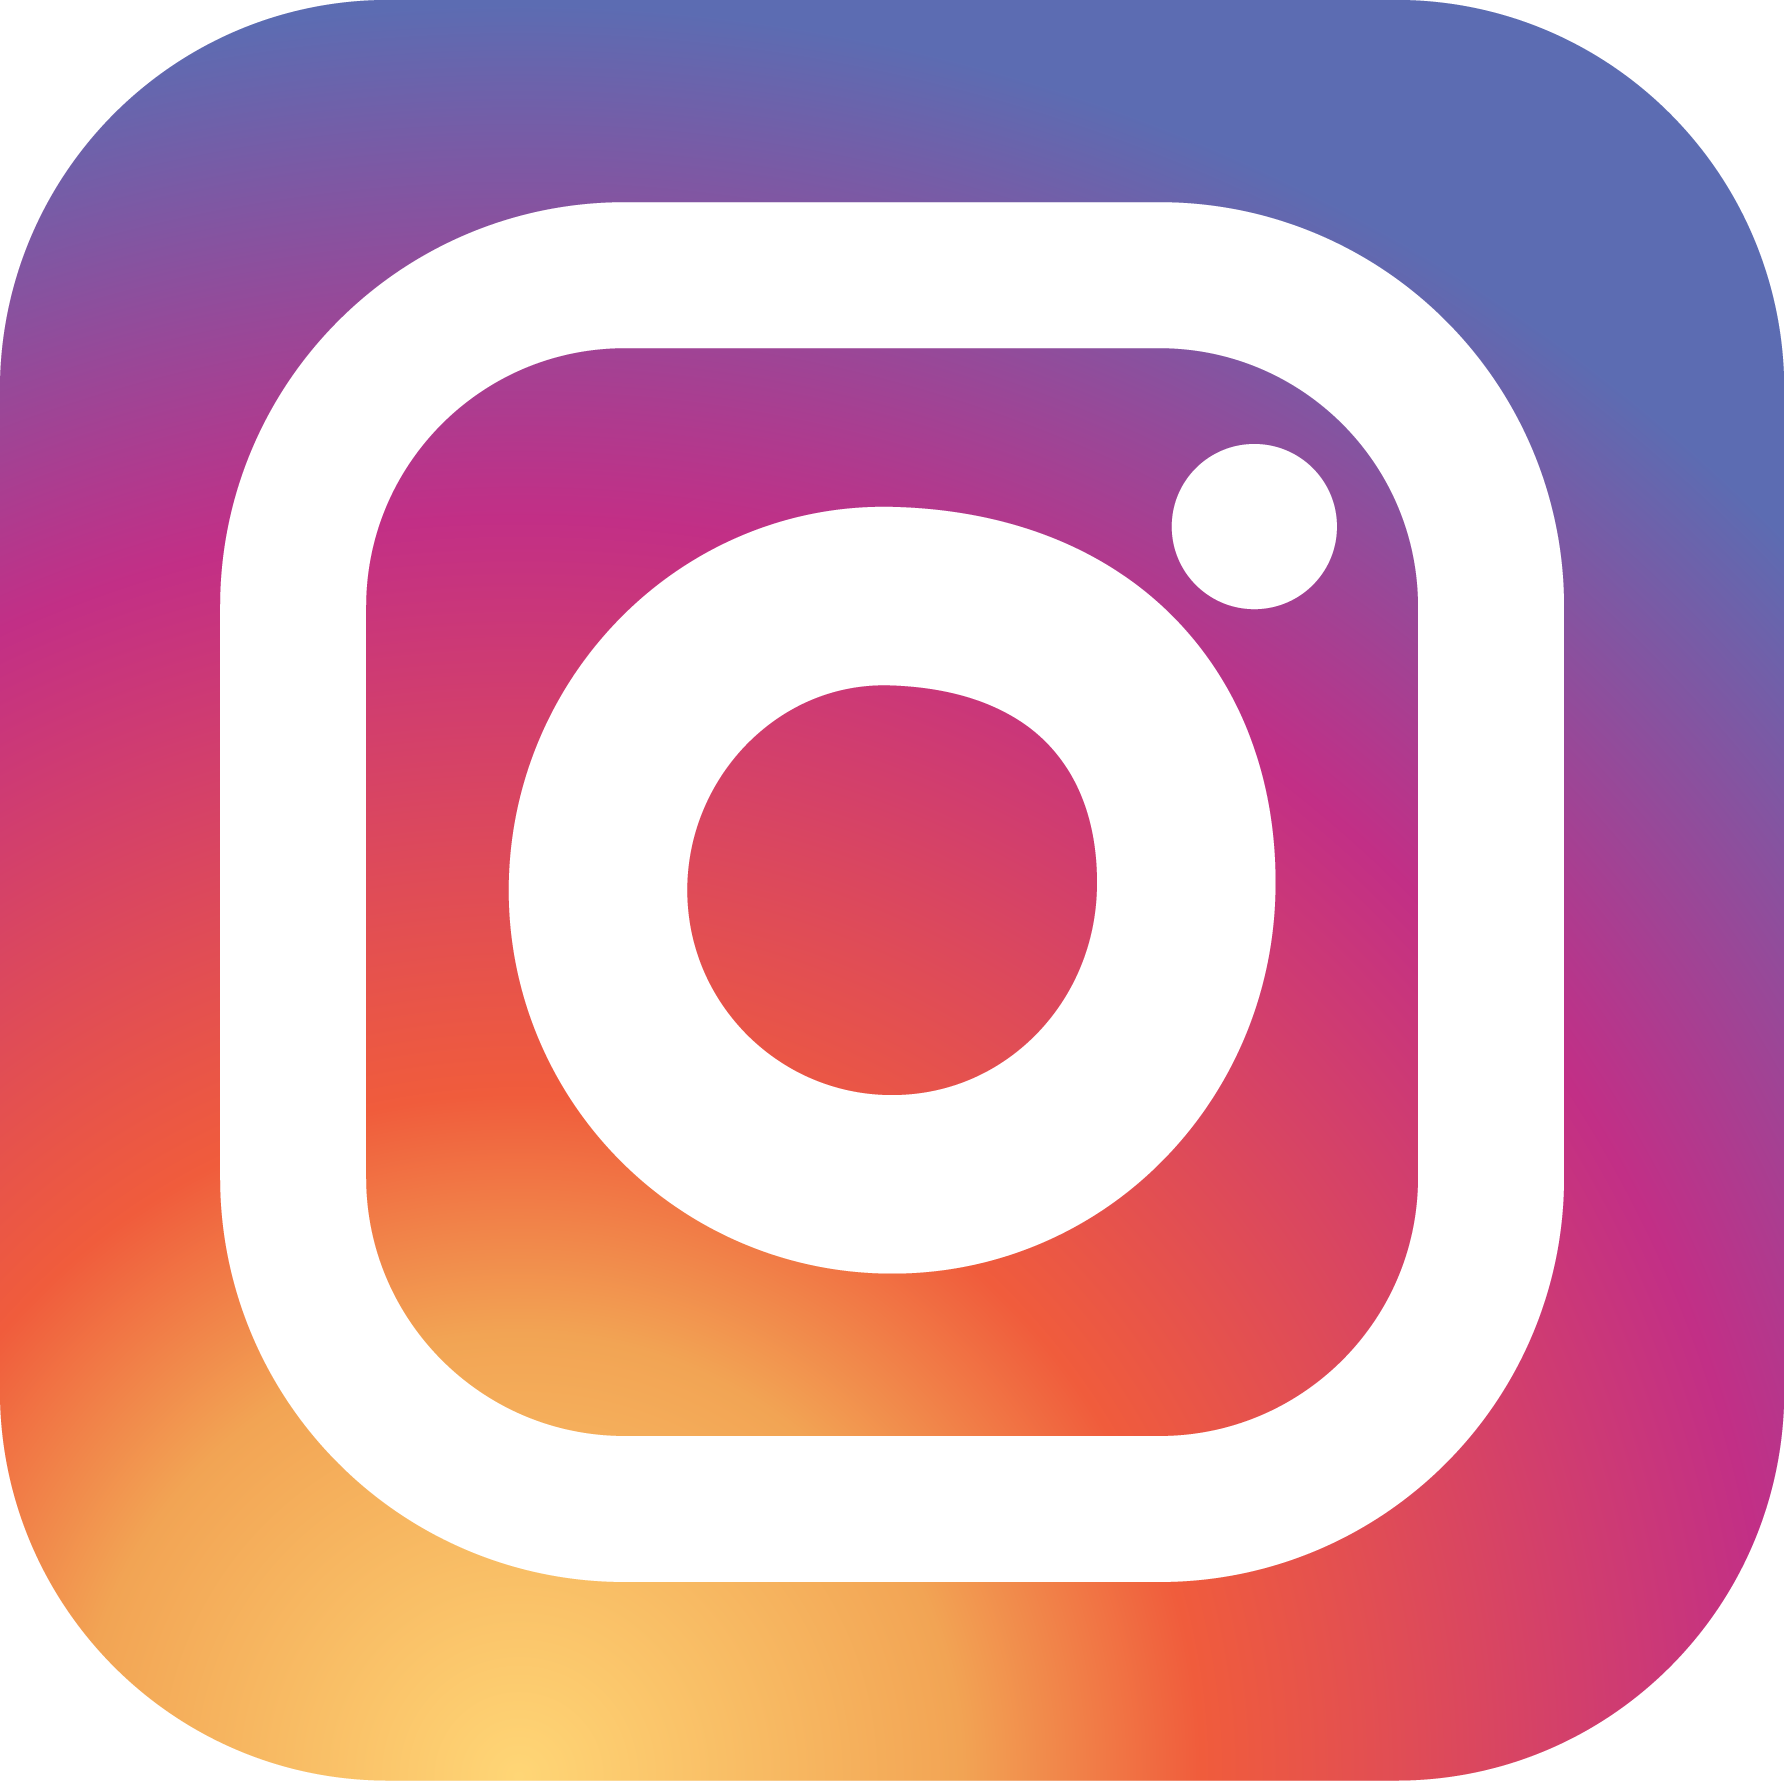 Instagram photo camera logo o